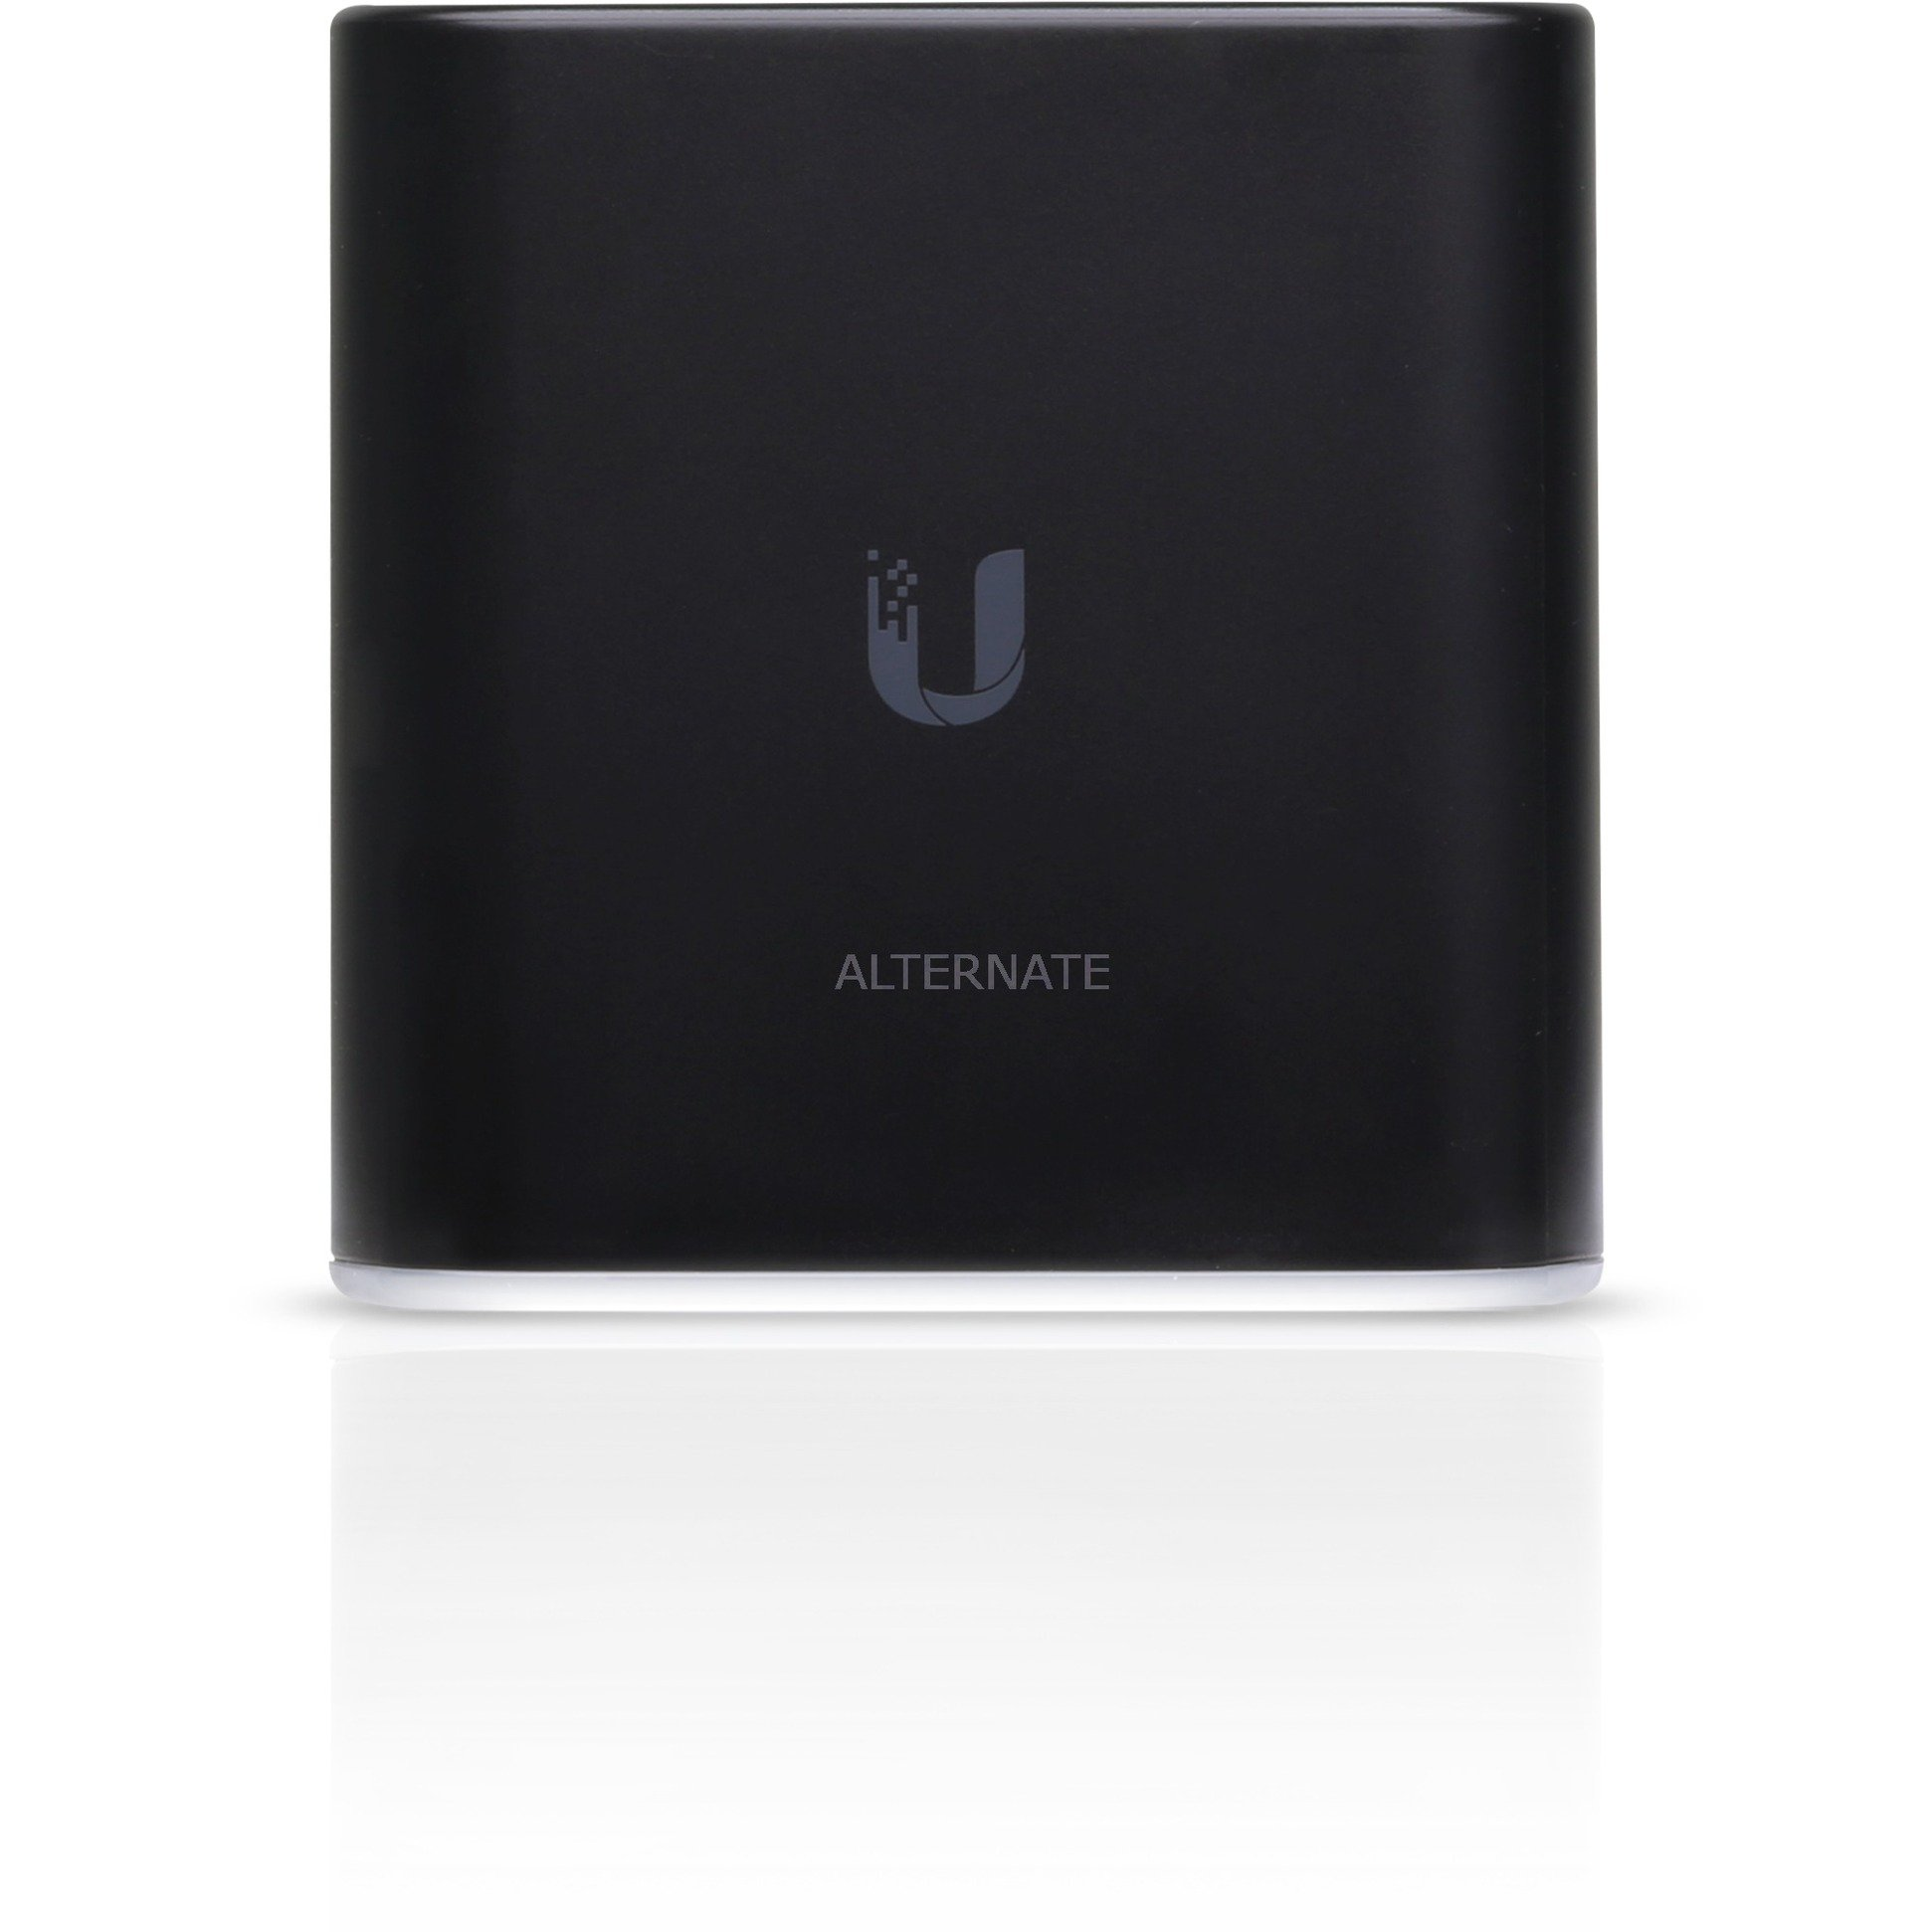 Image of airMAX Cube Home WiFi, Access Point